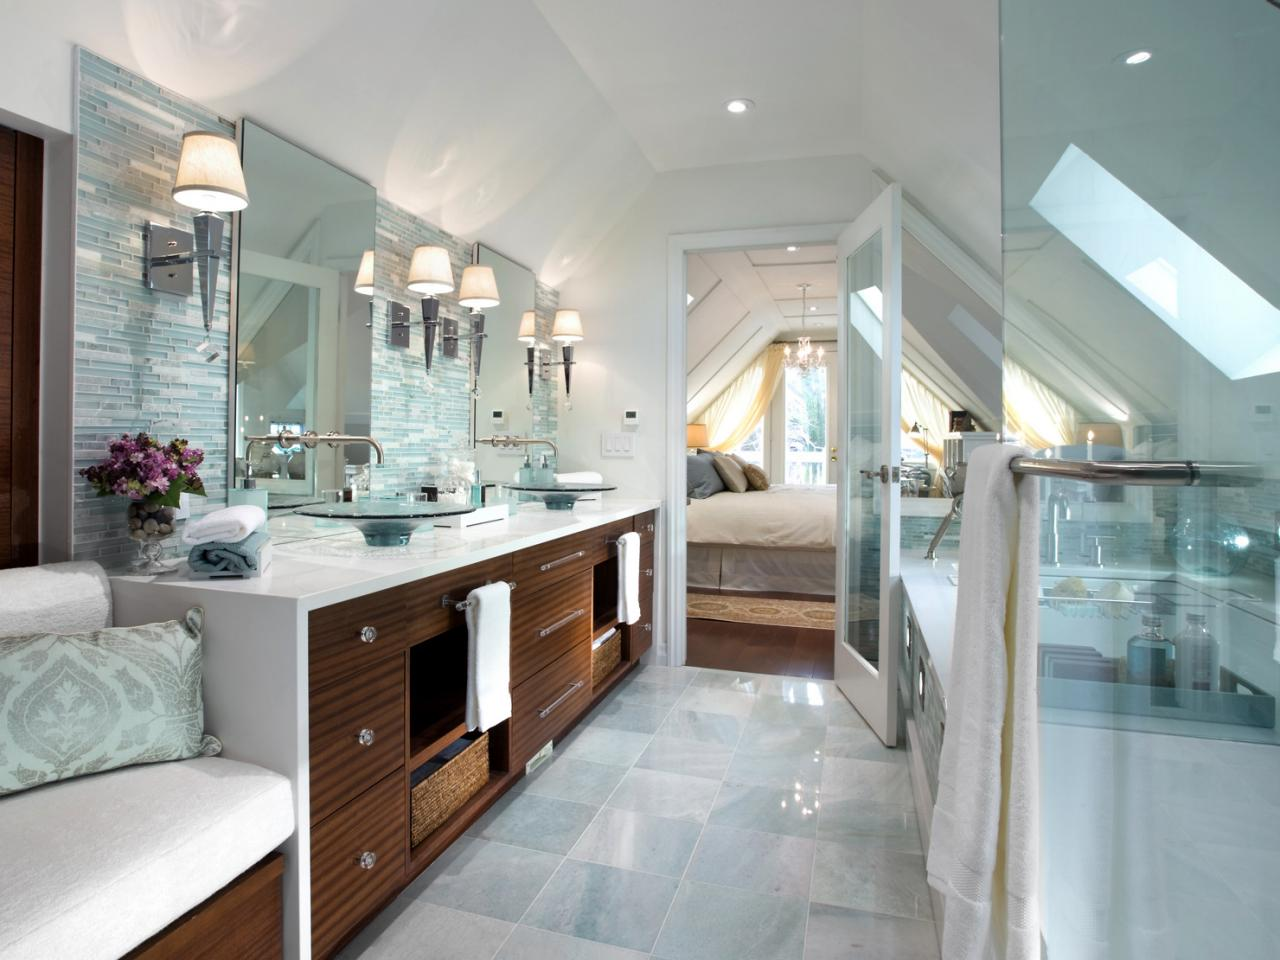 5 stunning bathrooms by candice olsen - Granite Bathroom Designs